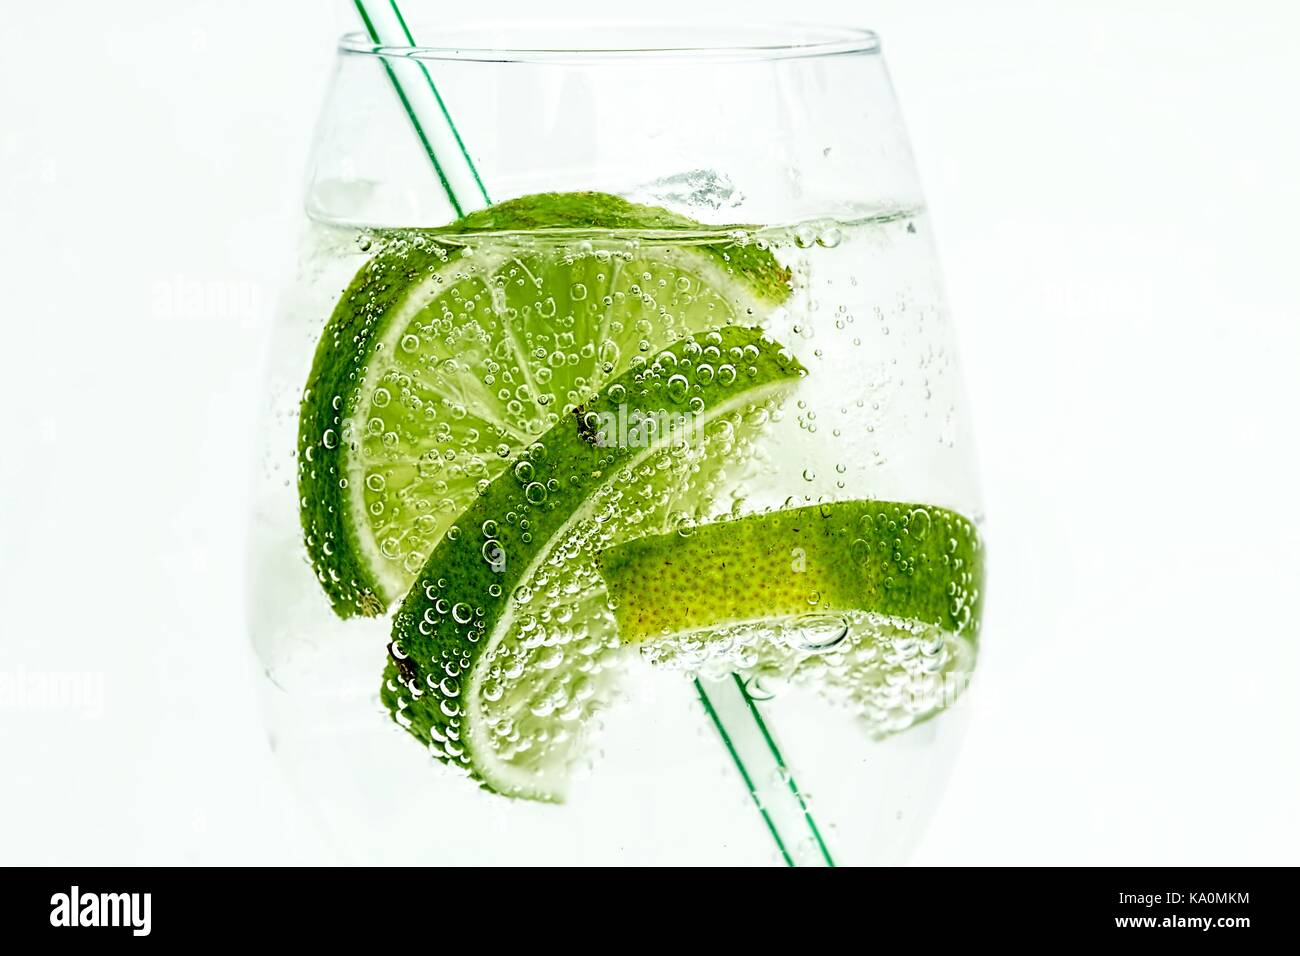 Lime slices in fizzy water - Stock Image